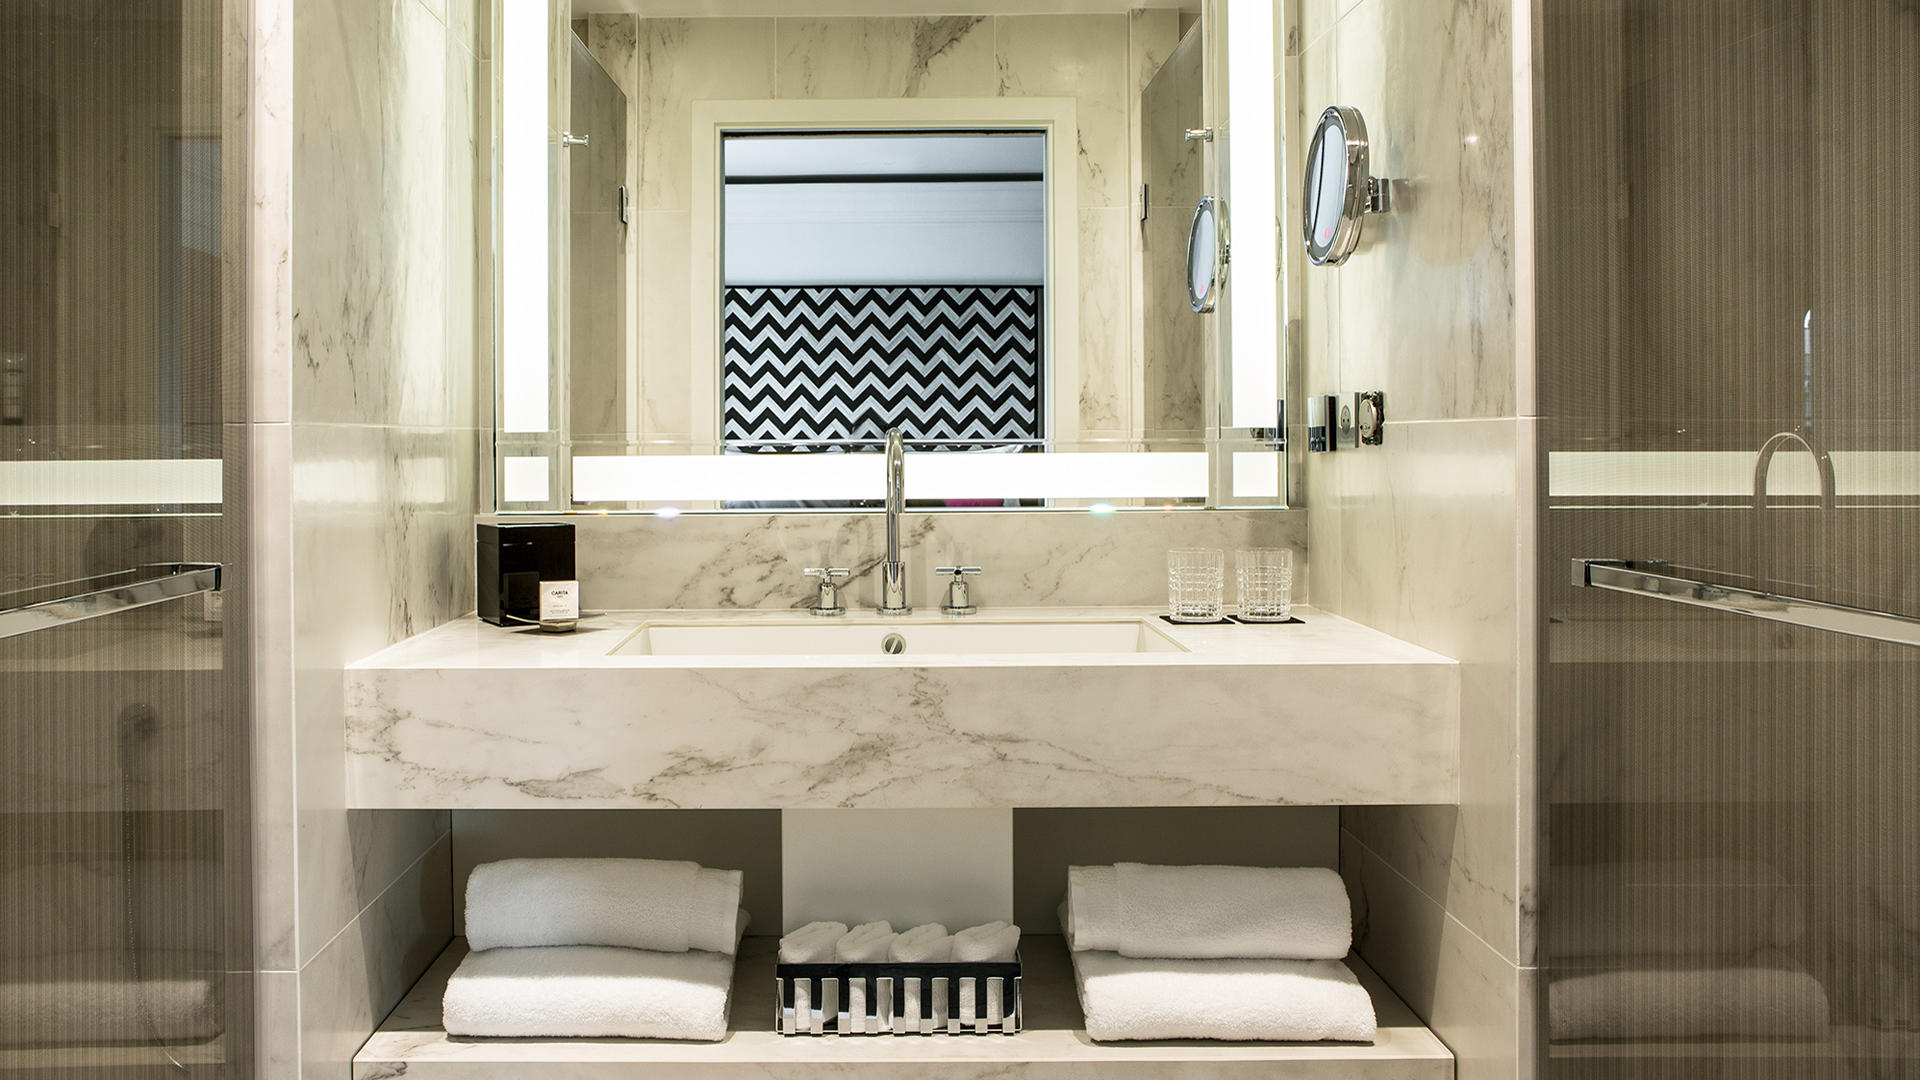 Fauchon_Hotel_Paris_Bathroom_1